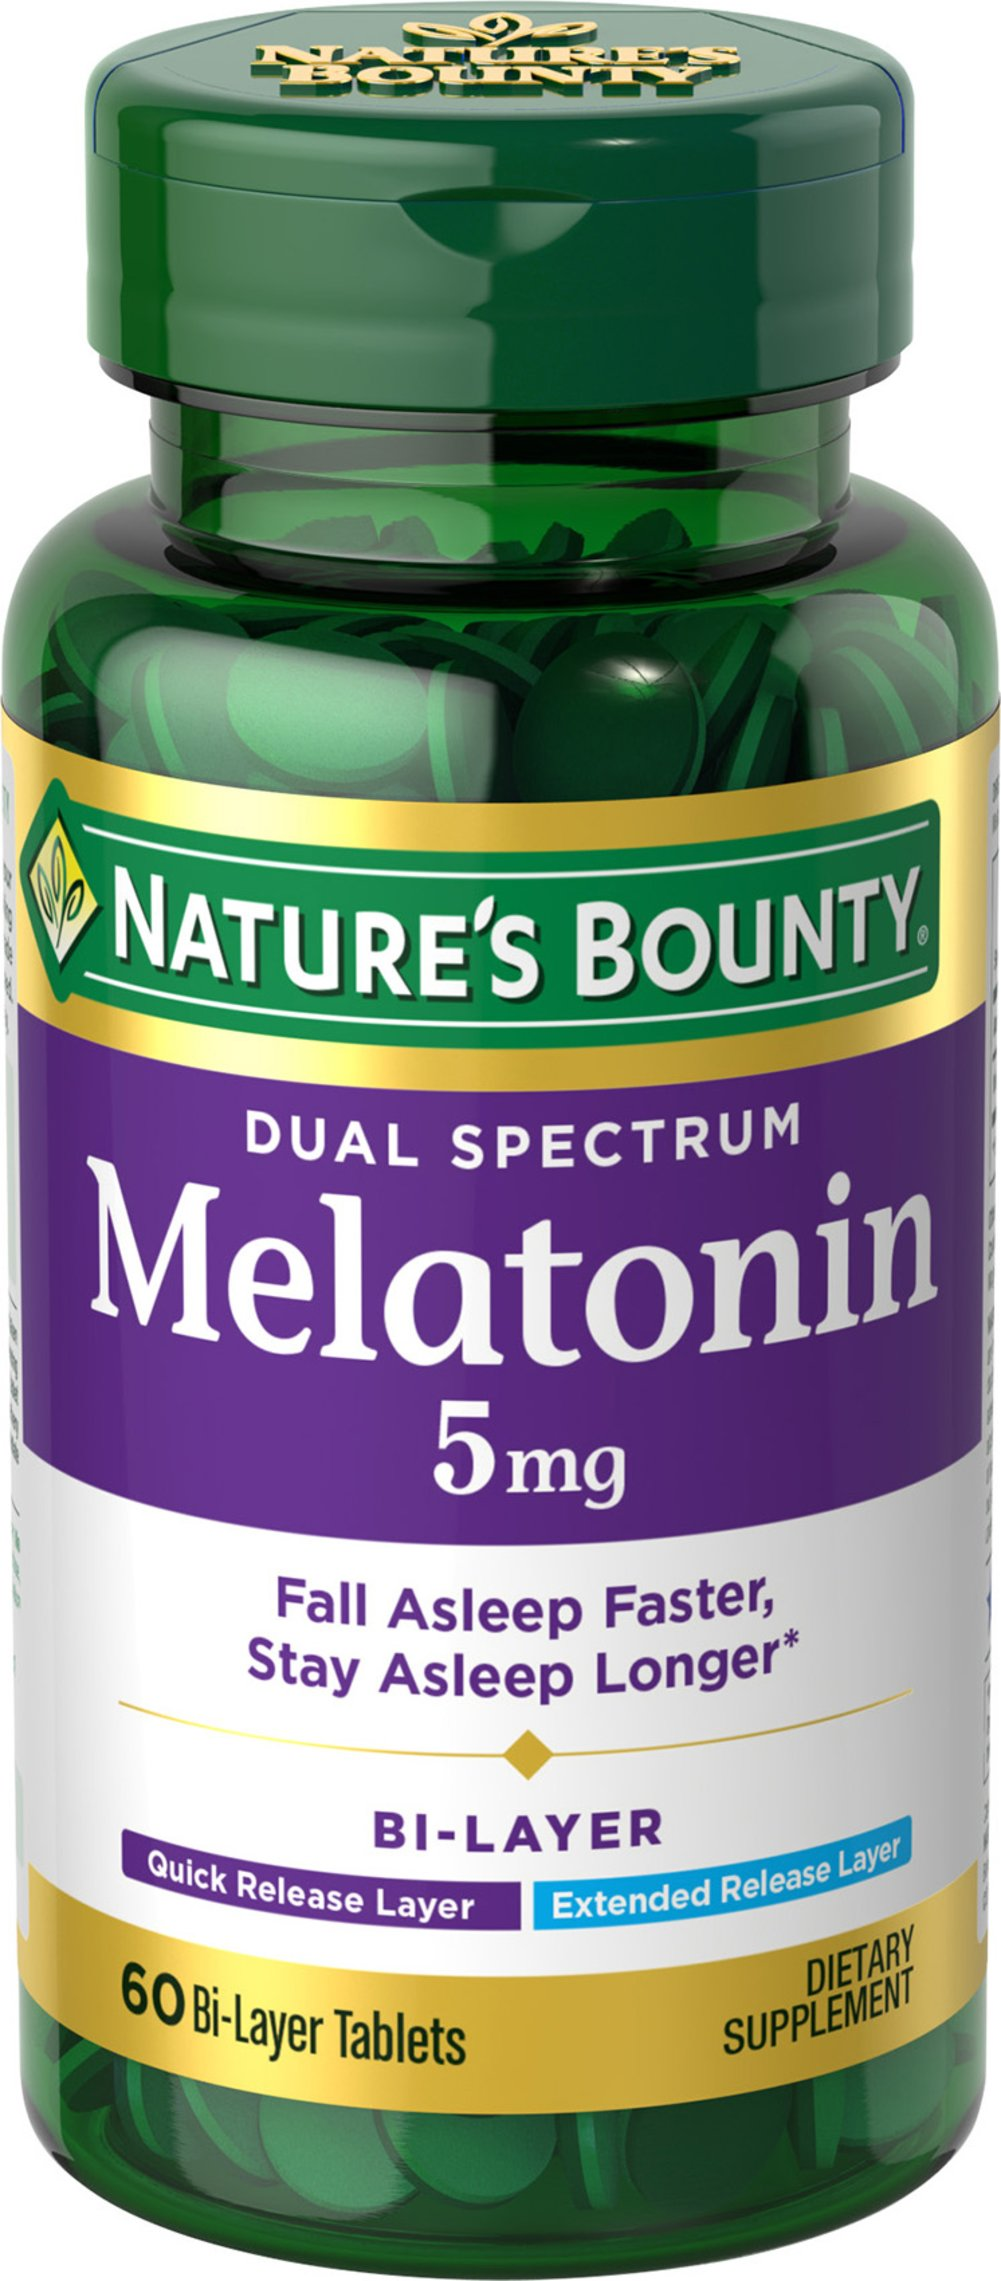 Nature's Bounty® Dual Spectrum Melatonin 5 mg